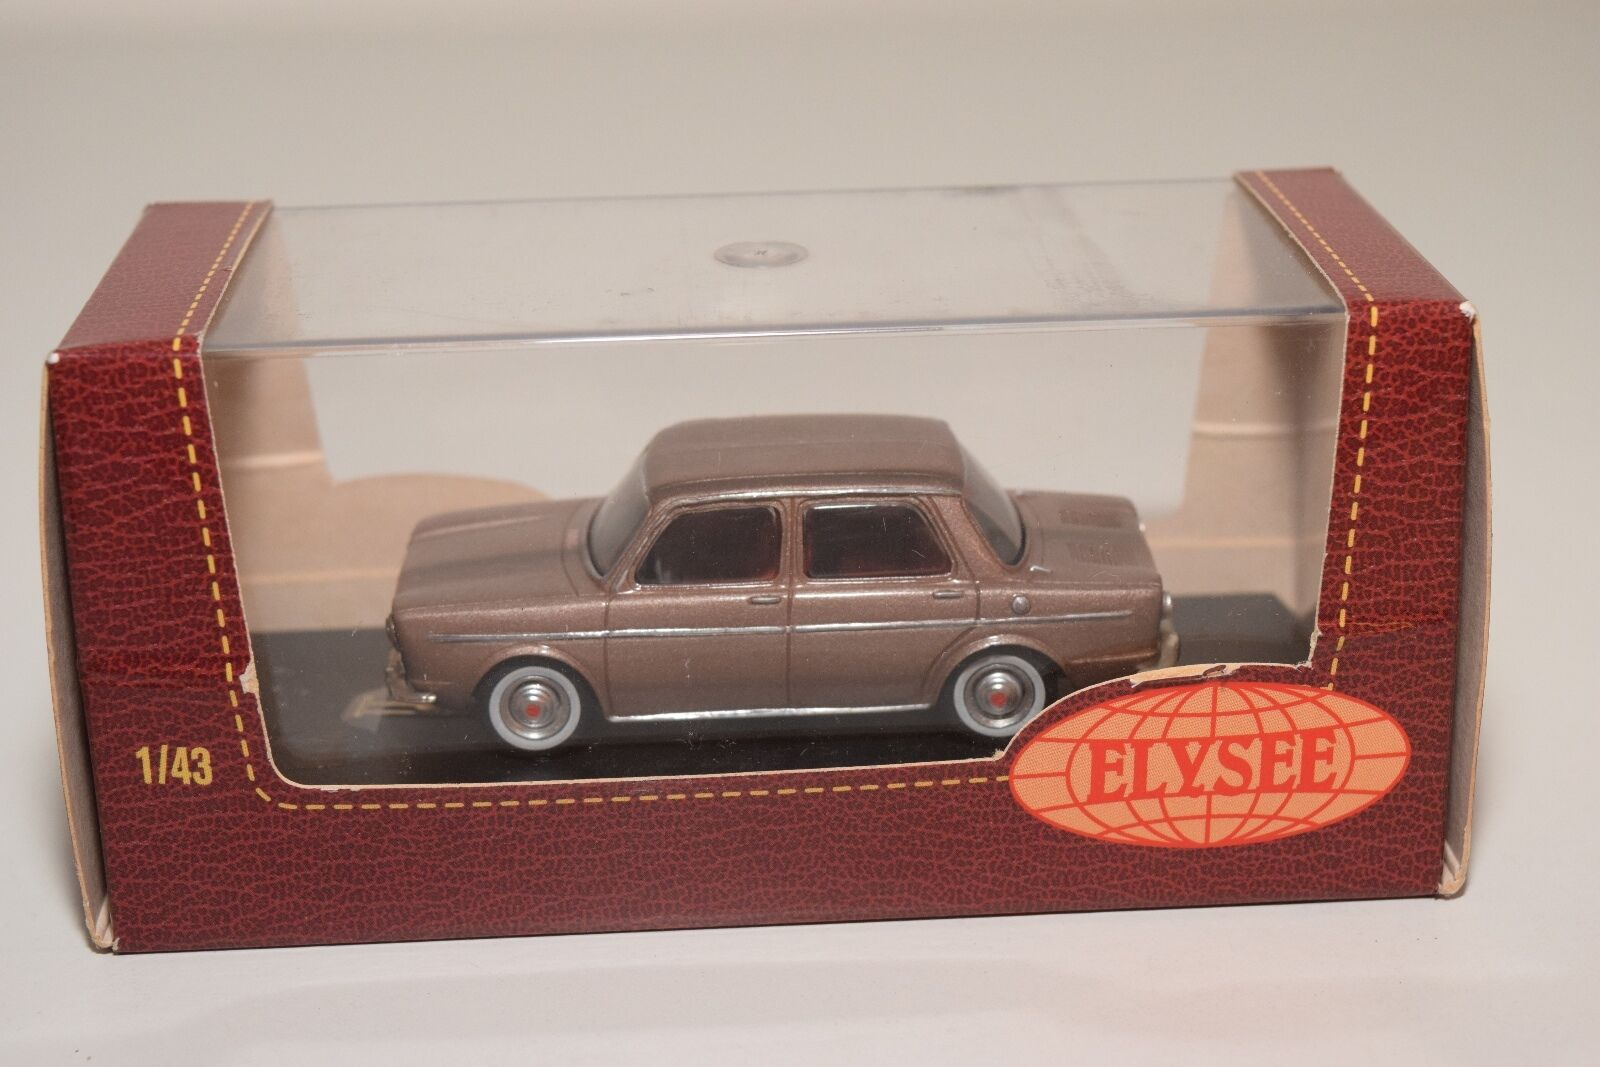 . ELYSEE ELY571 SIMCA 1000 GLS 1000GLS 1965 METALLIC BROWN MINT BOXED RARE